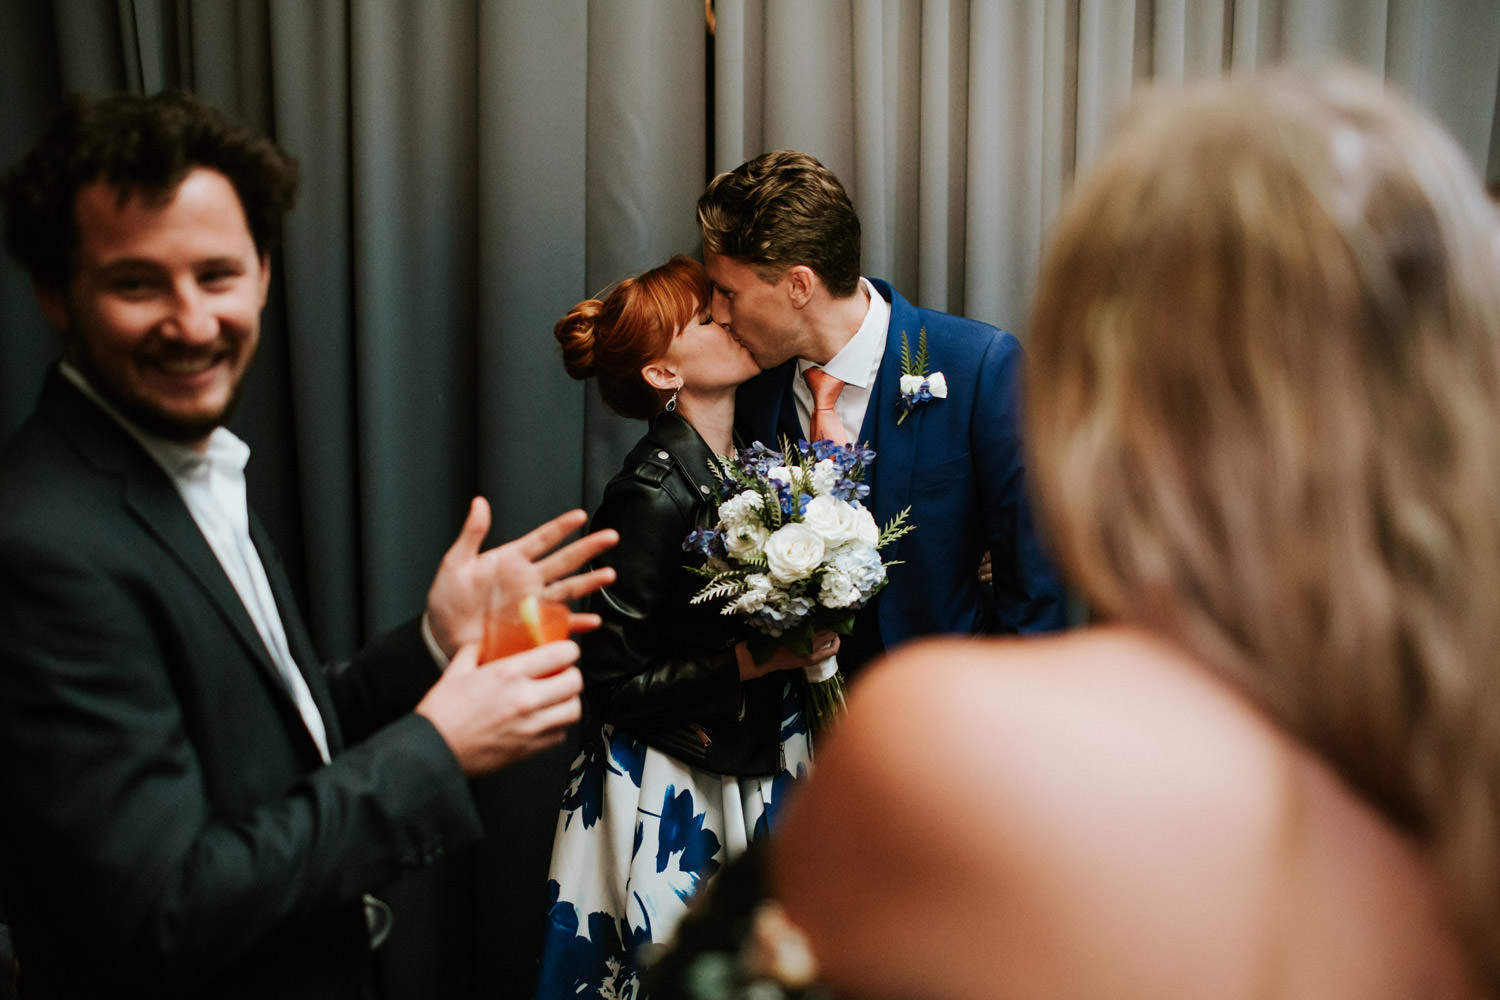 chicago elopement photographer documenting couple kissing during the wedding